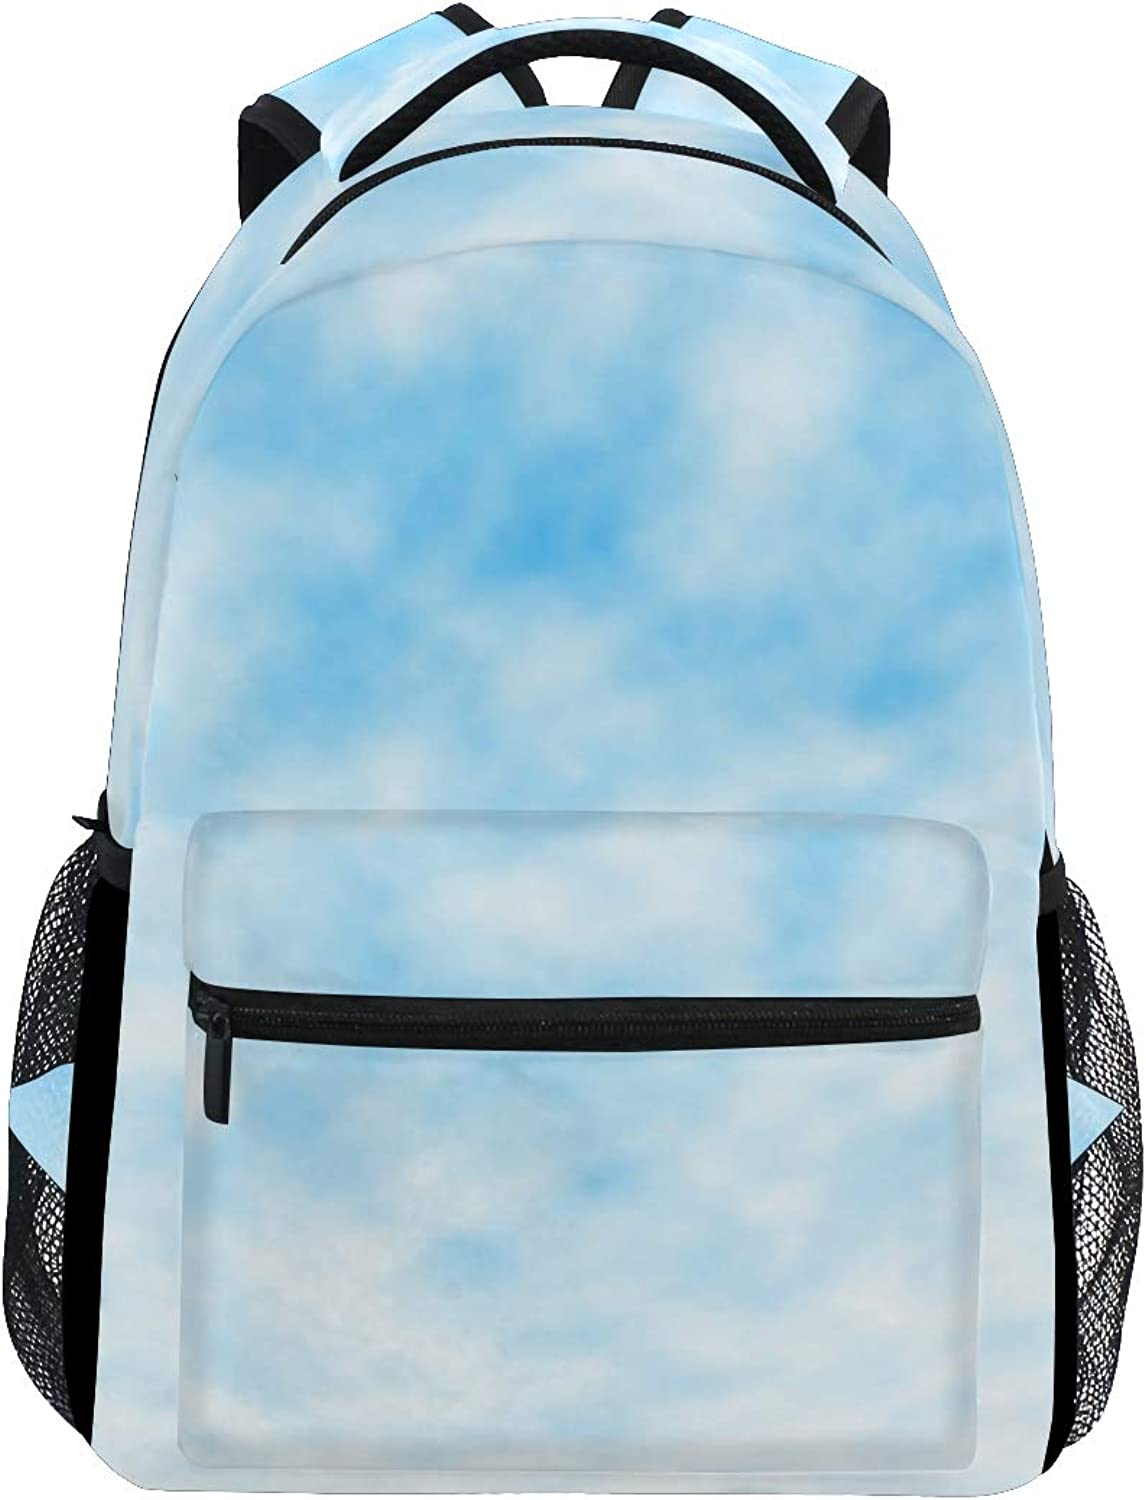 Invisible Cloud Wall Decal Large Backpack Travel Outdoor Sports Laptop Backpack for Women & Men College School Water Resistant